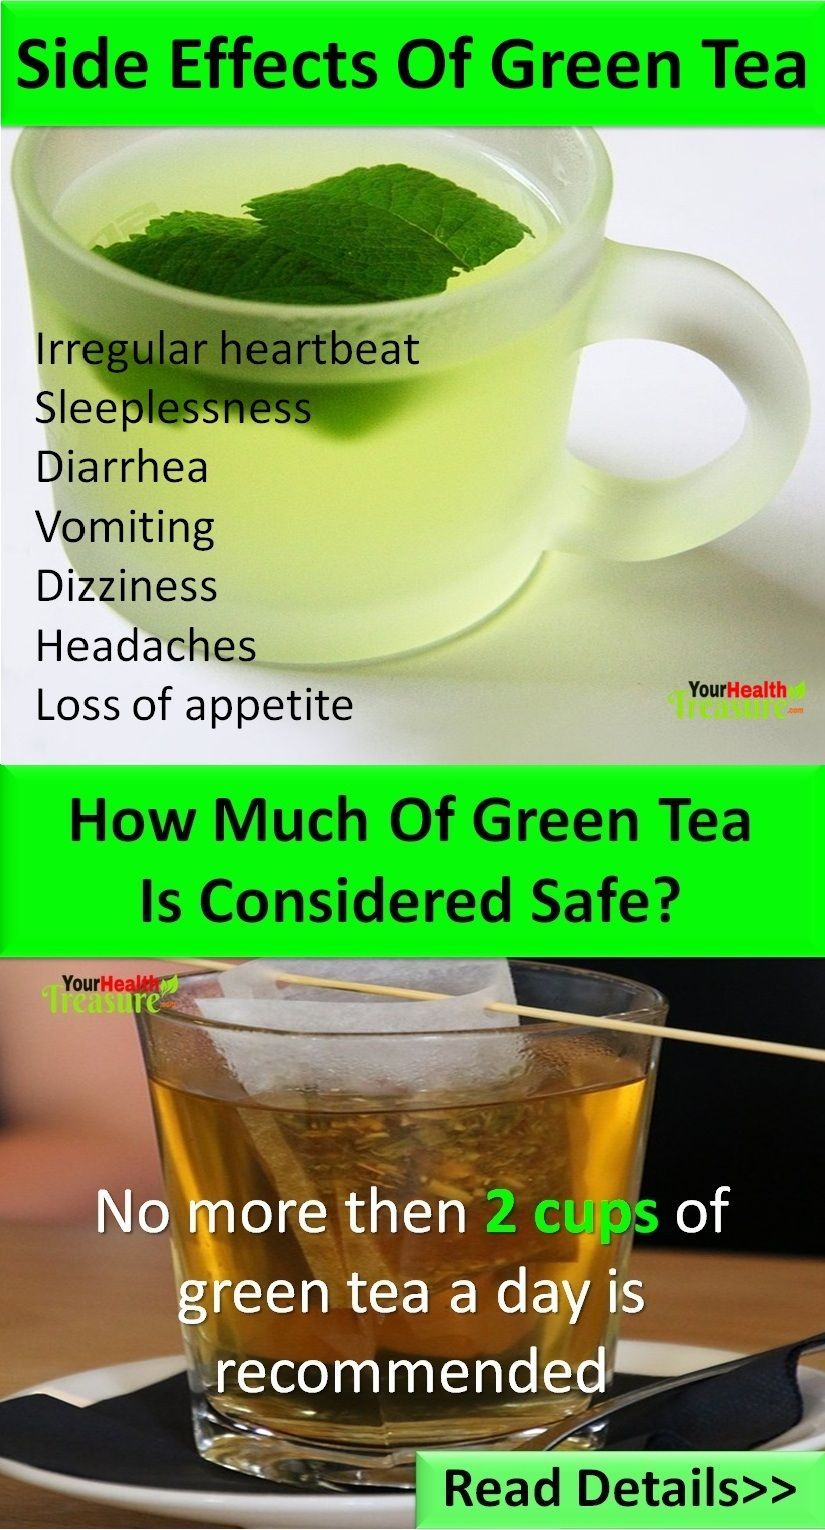 Green tea - good and bad for the body